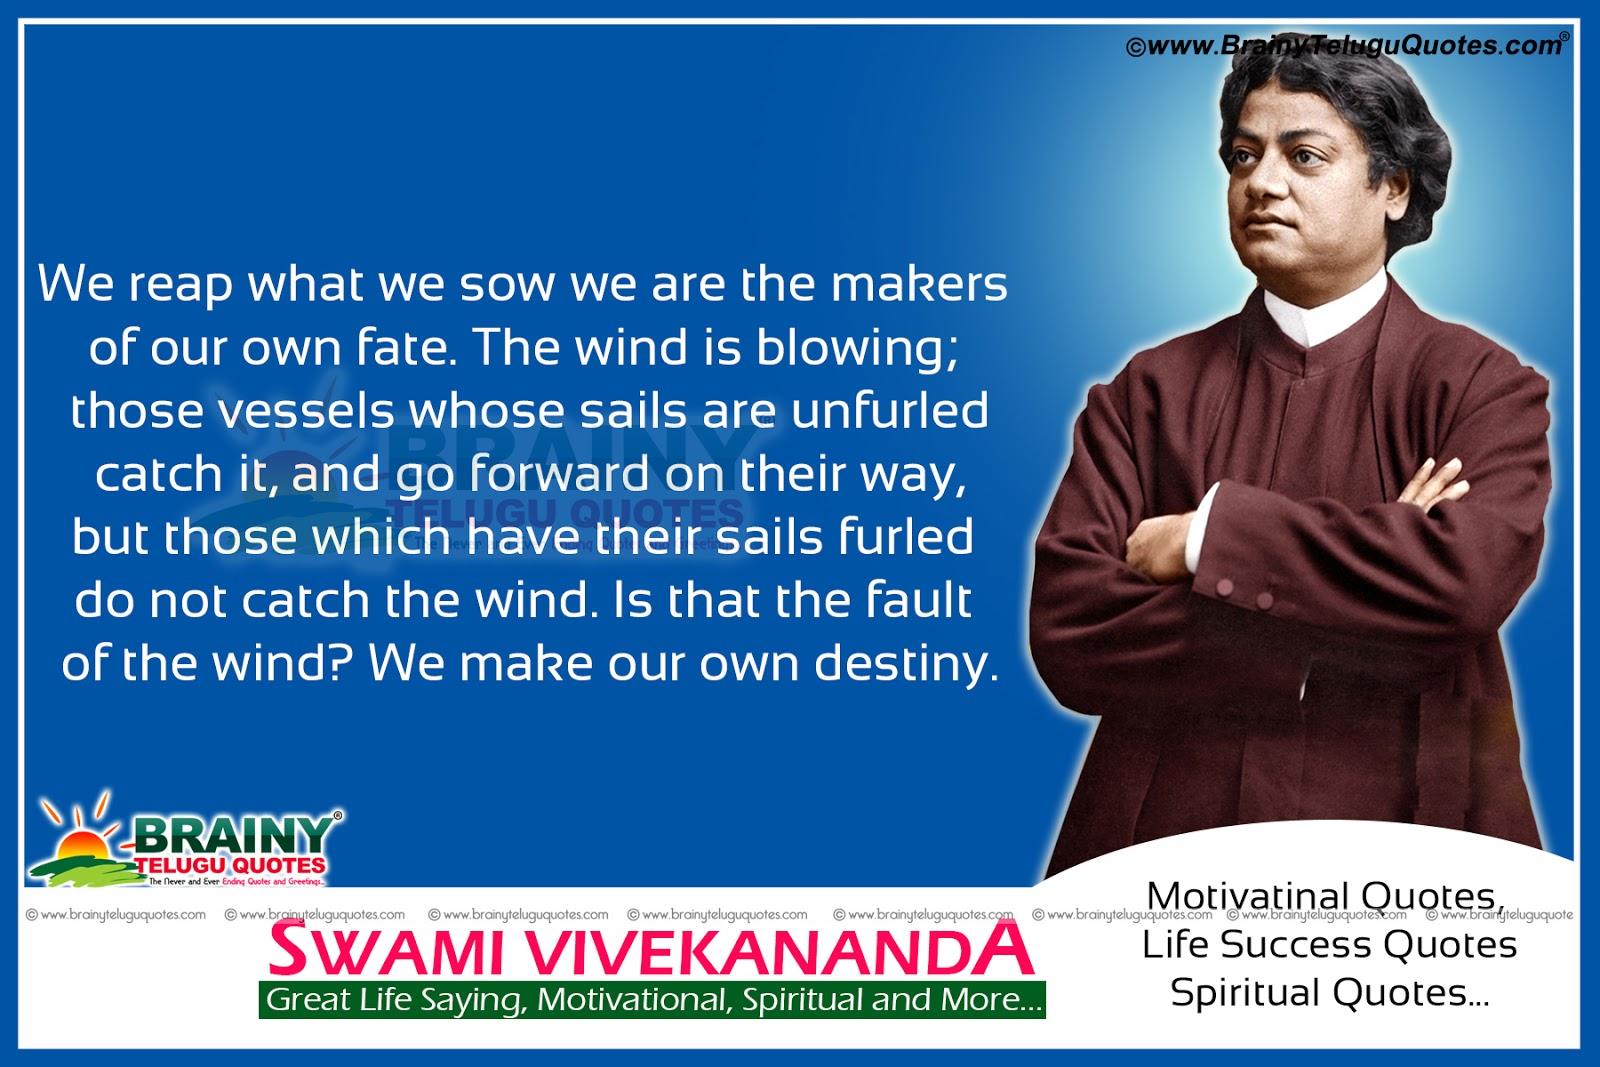 Swami Vivekananda Quotes In Telugu Hd Wallpapers Swami Vivekananda